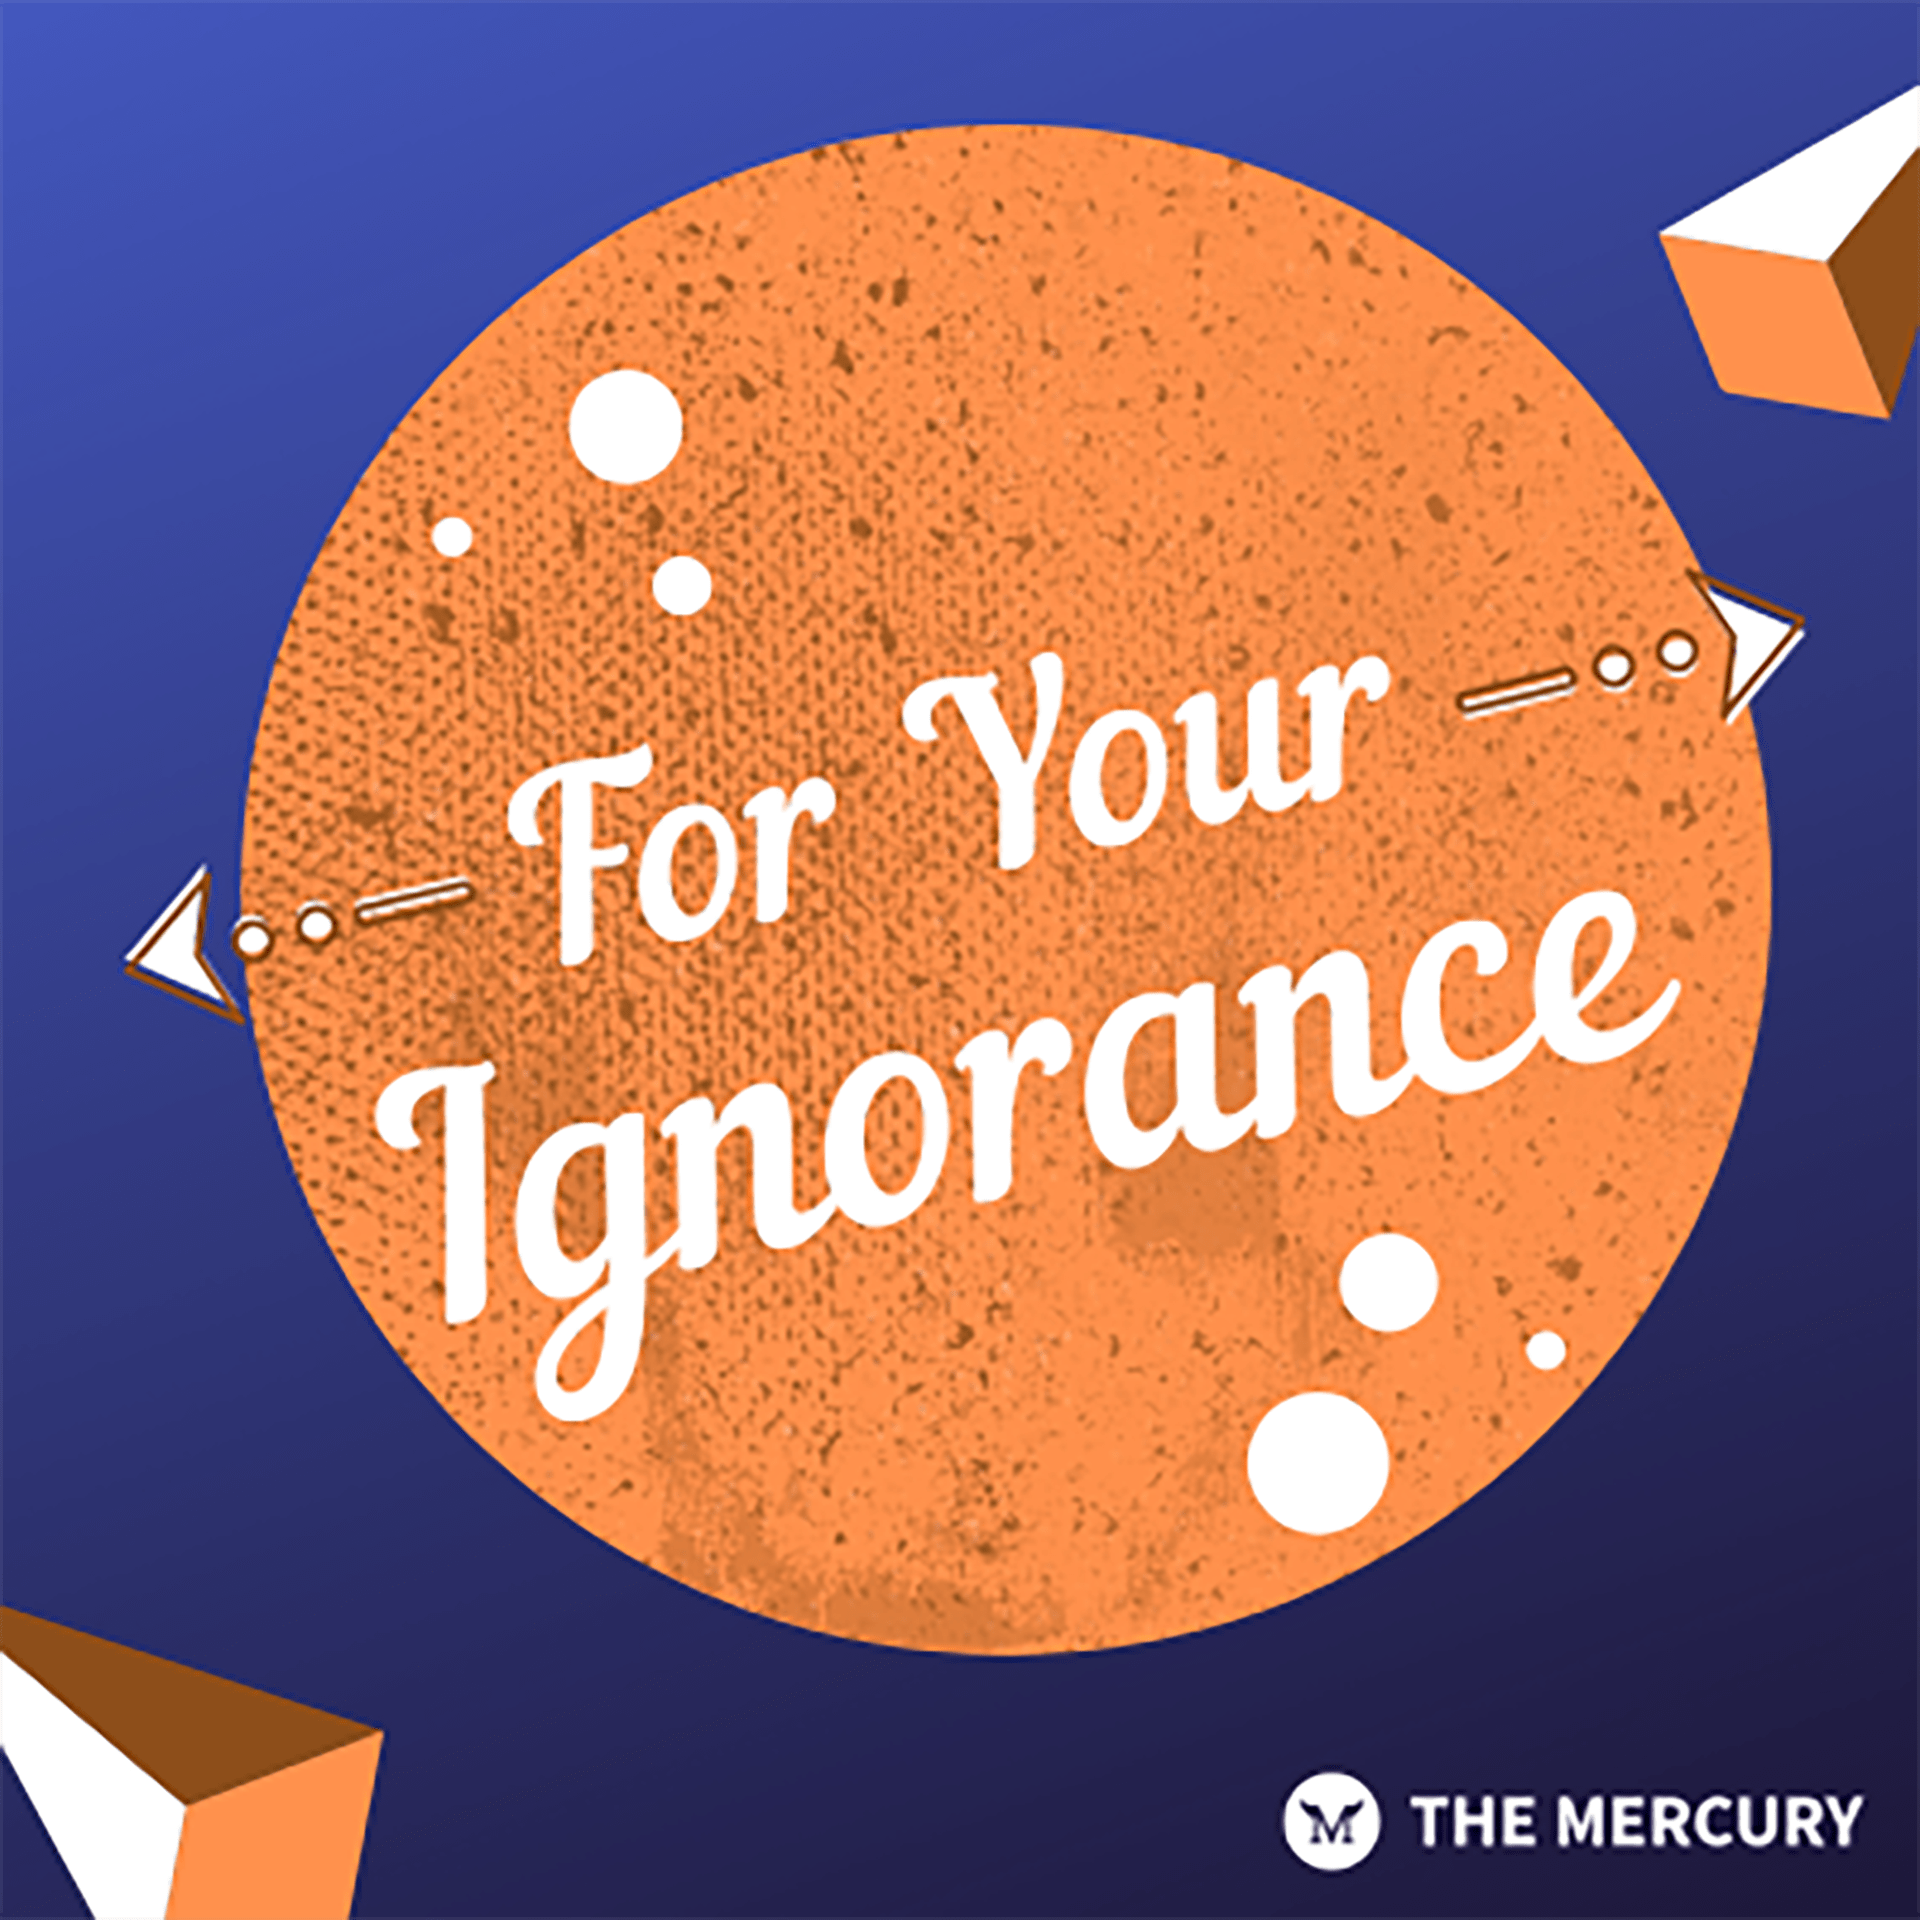 For Your Ignorance: 10/27/20